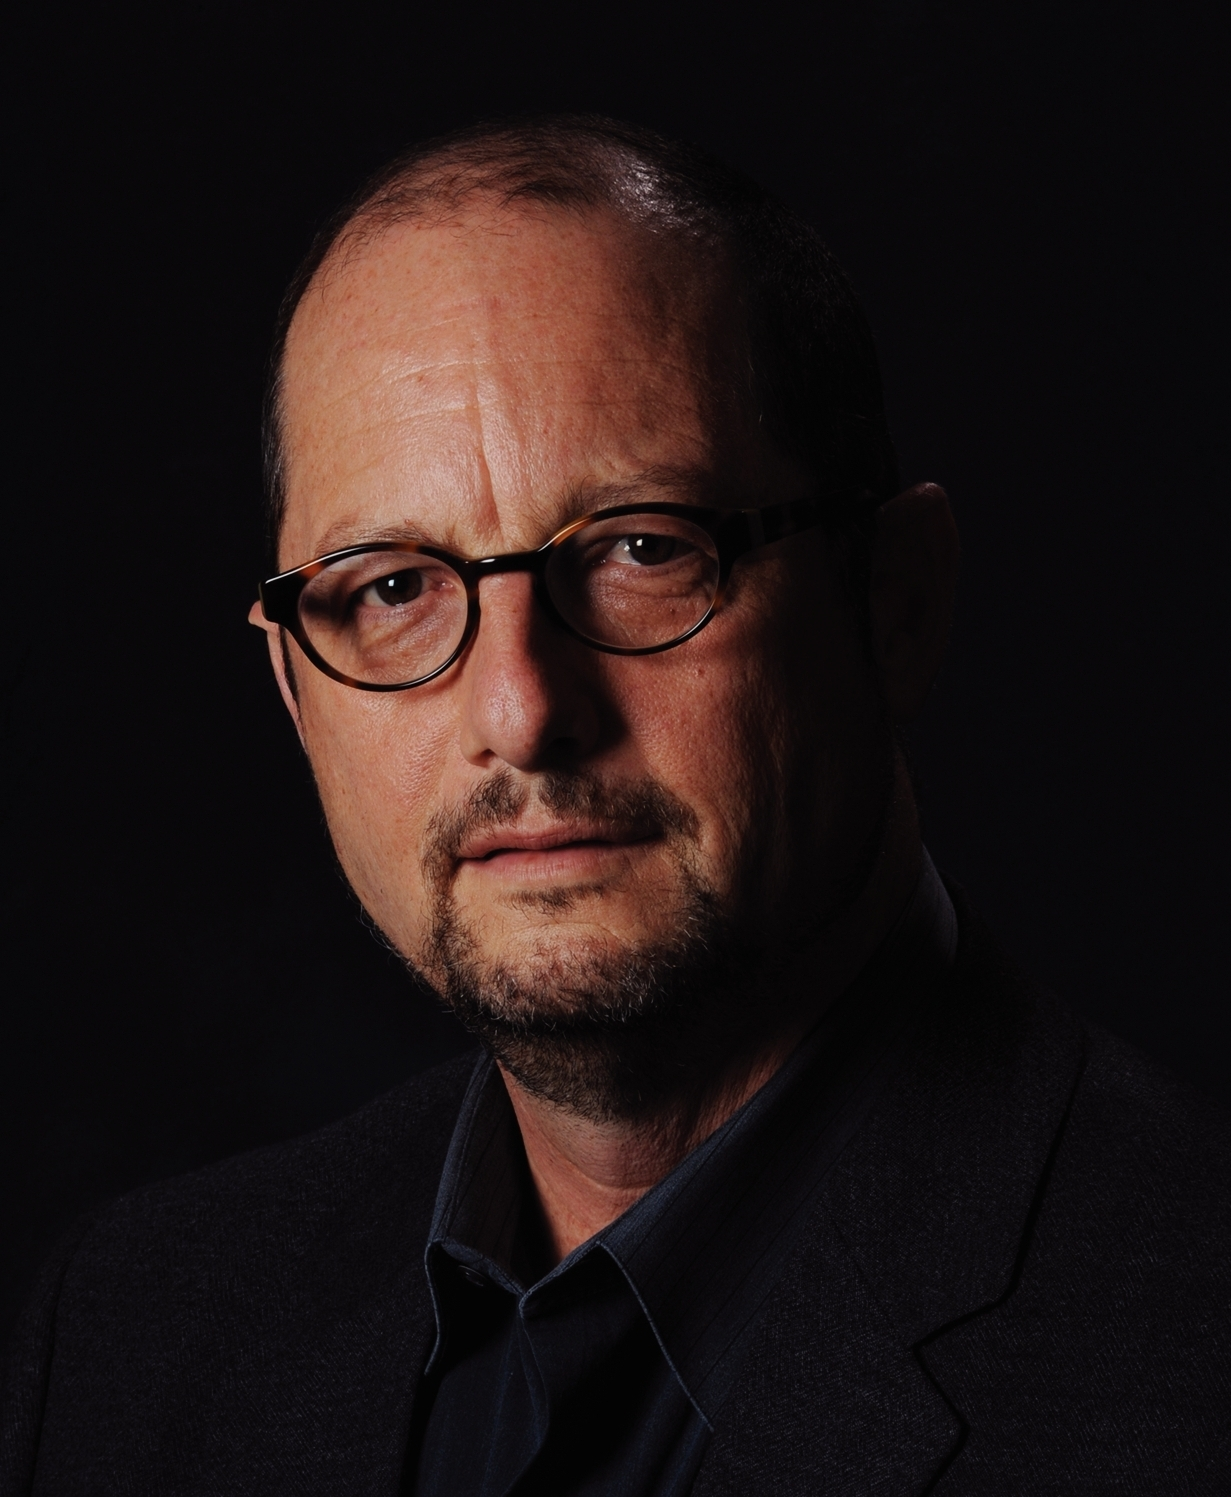 Bart Ehrman is also the author of Misquoting Jesus, God's Problem and Jesus, Interrupted. He's a professor of religious studies at the University of North Carolina, Chapel Hill.